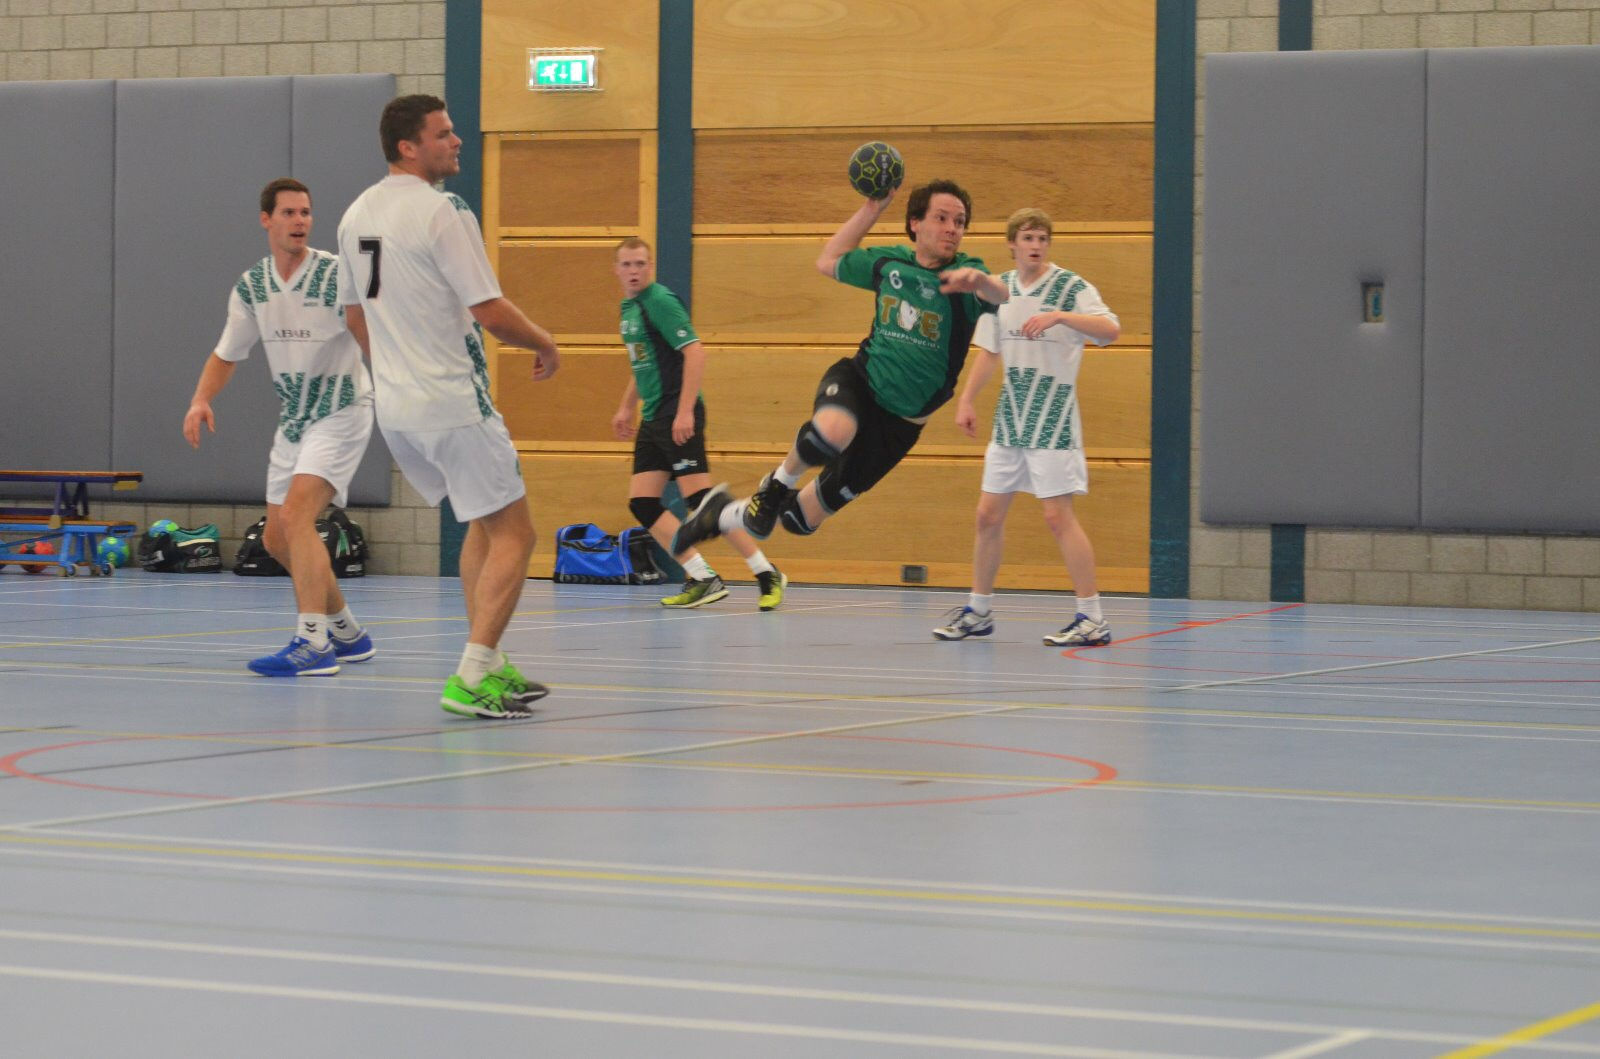 Zephyr, Handbal, Heren 1